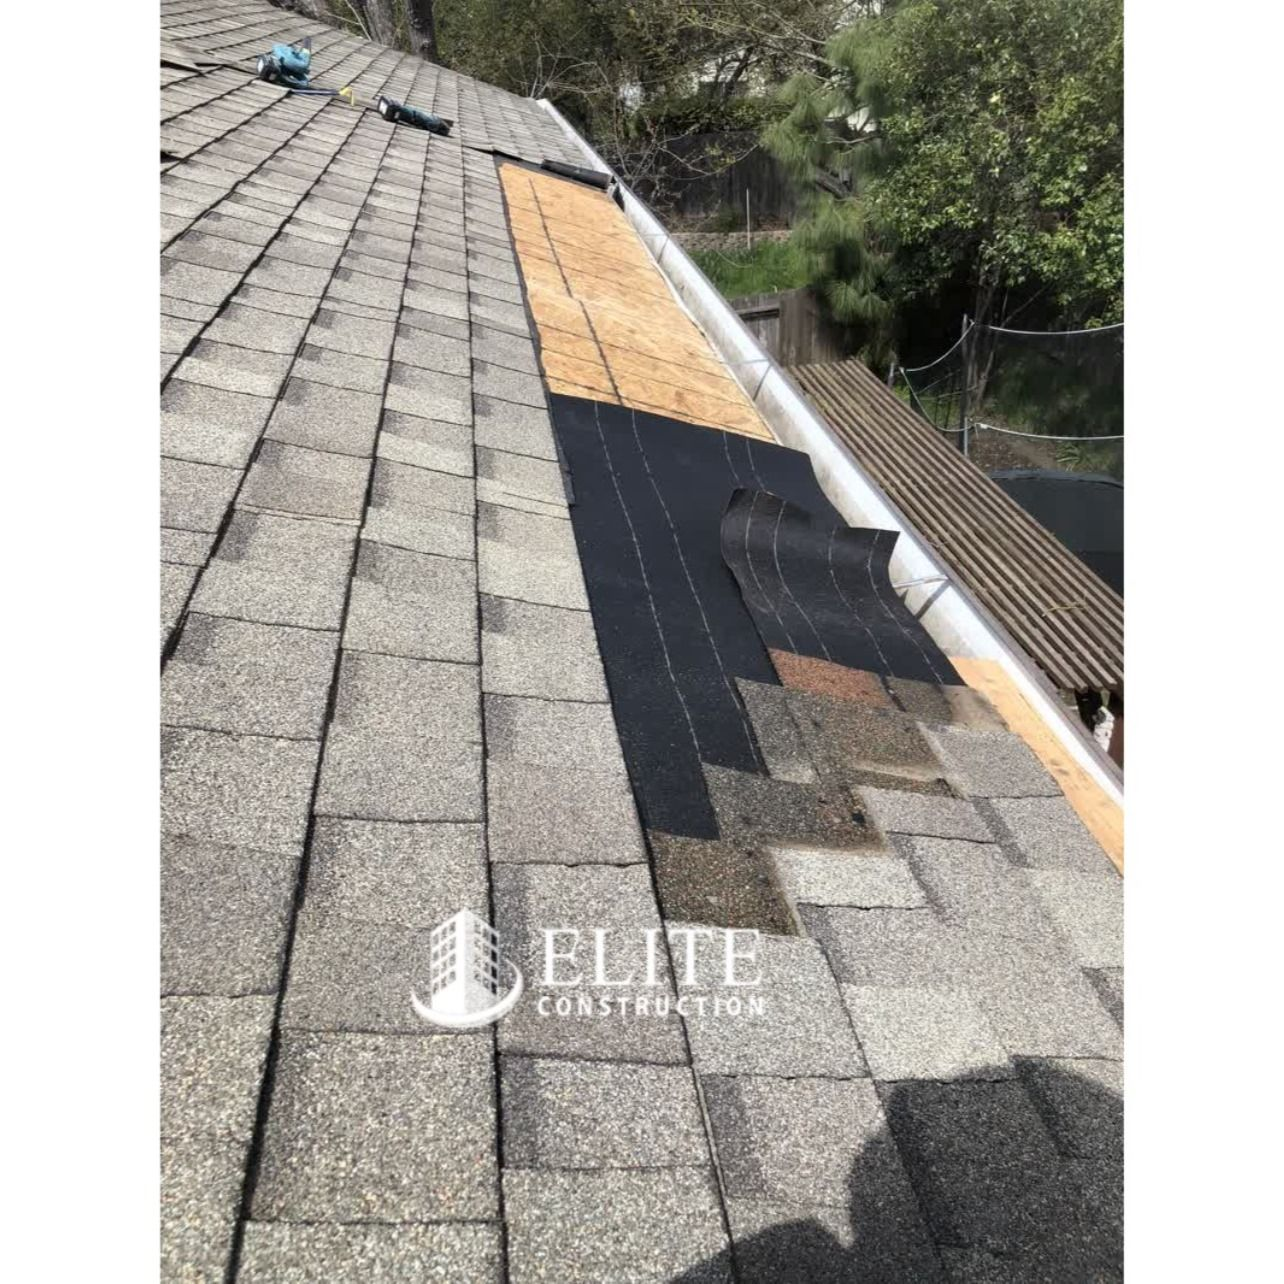 Roof Covering And Rsp Plywood Roof Sheathing Dry Rot Damage Repair In 2020 Roof Sheathing Gutters Roof Covering